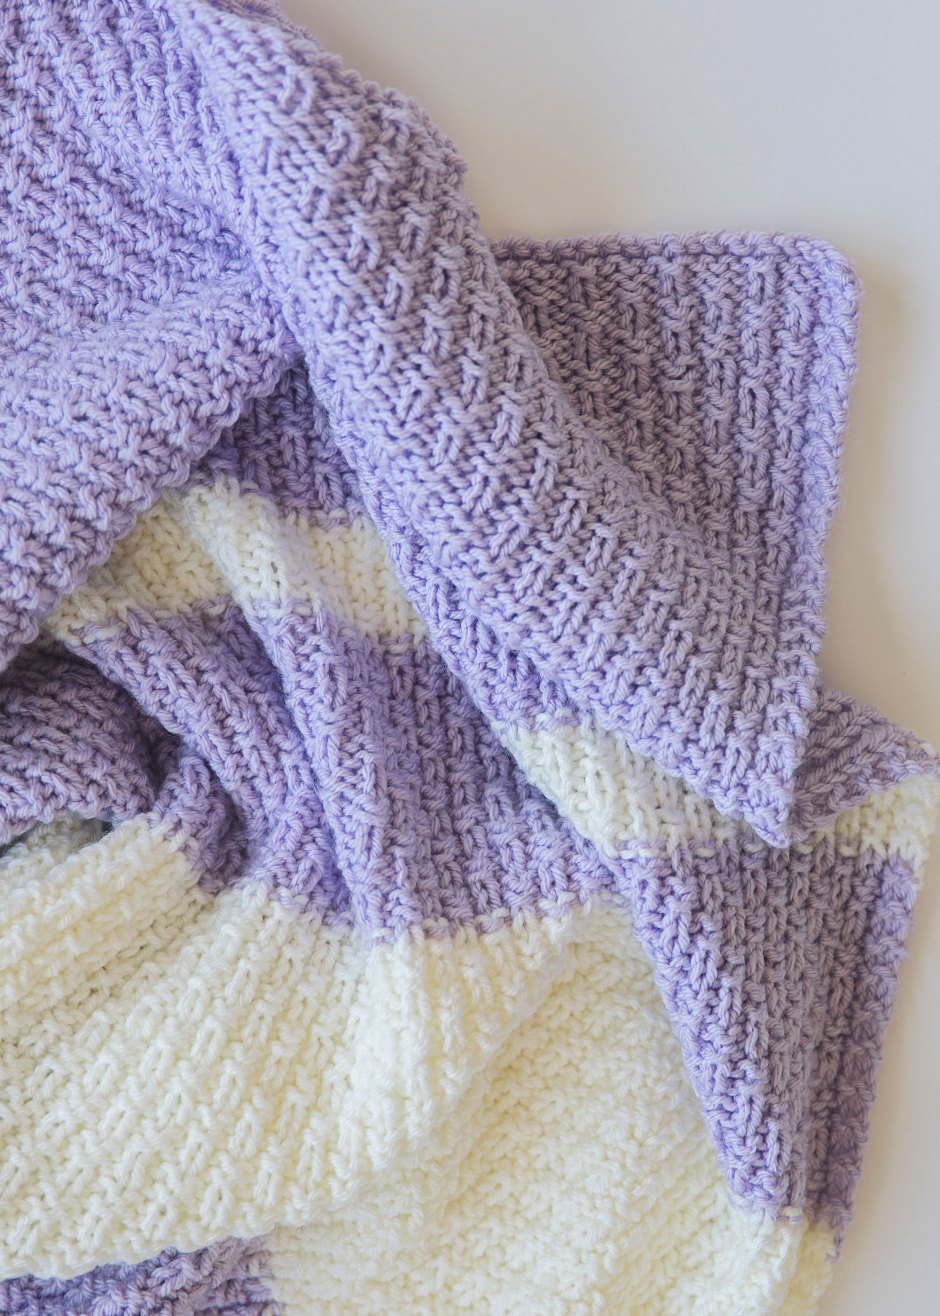 Baby Afghan Knitting Patterns : Easy Knit Baby Blanket Pattern - Leelee KnitsLeelee Knits